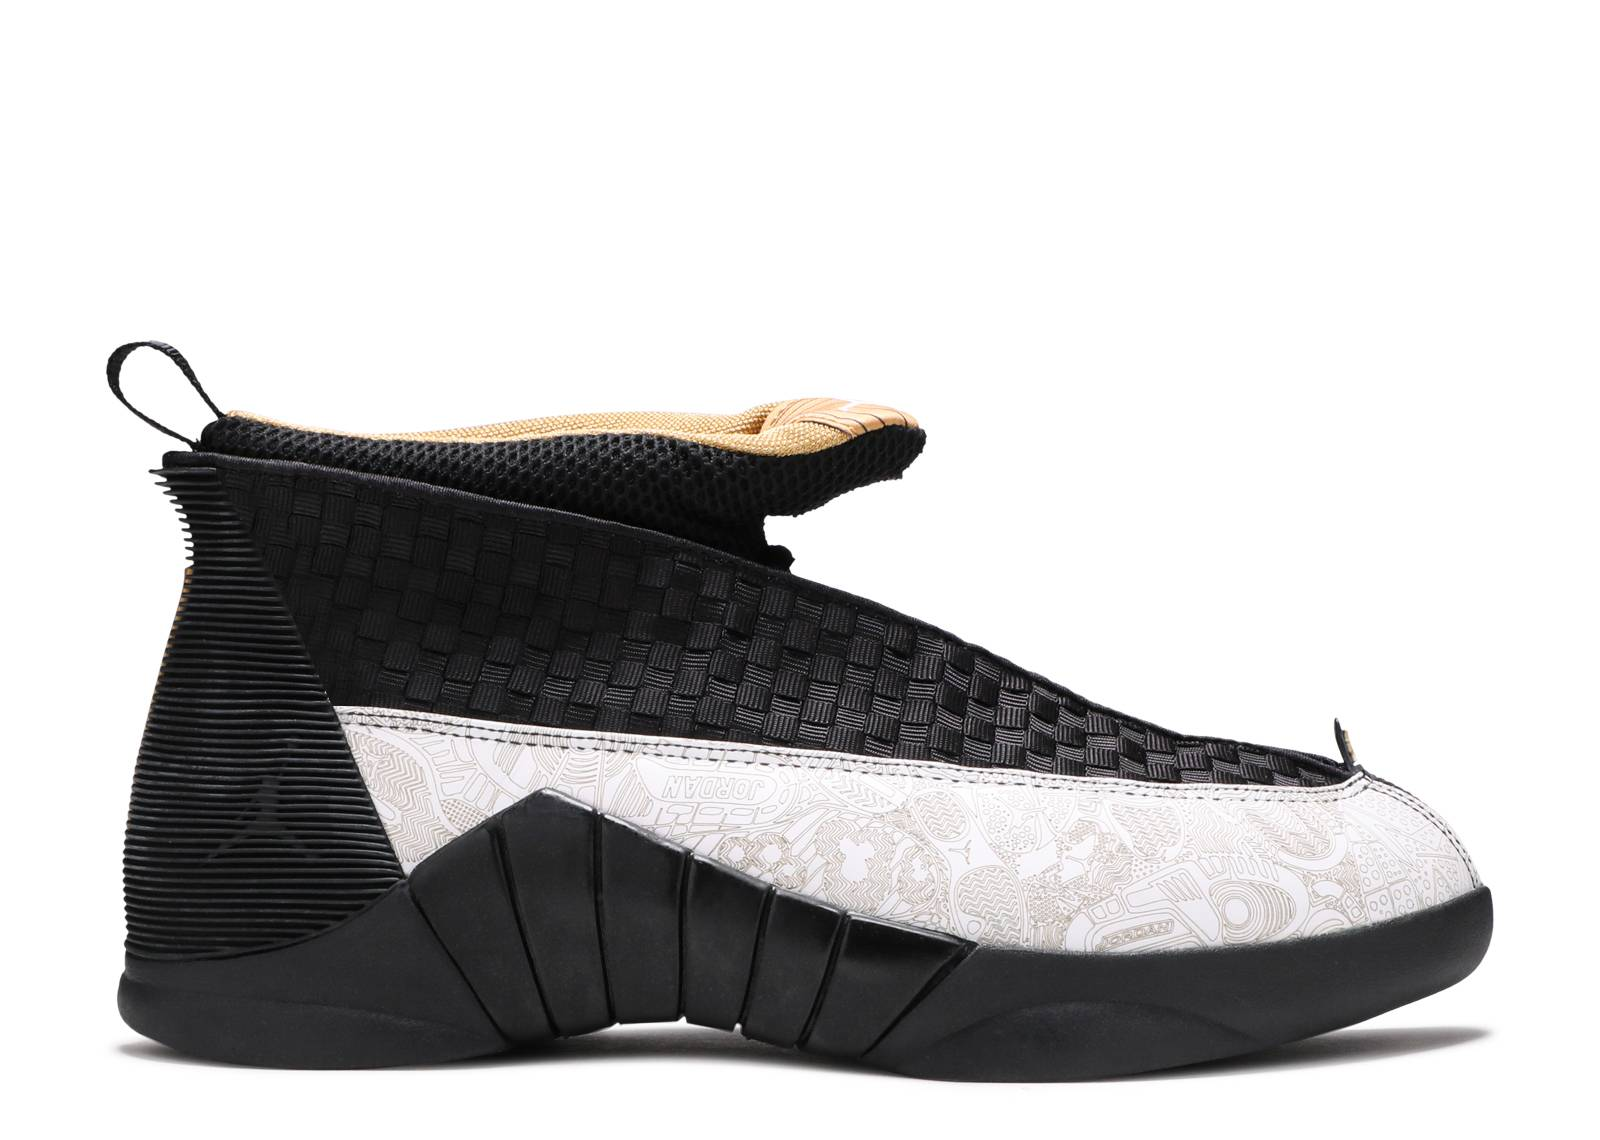 Air Jordan 15 Retro Ls